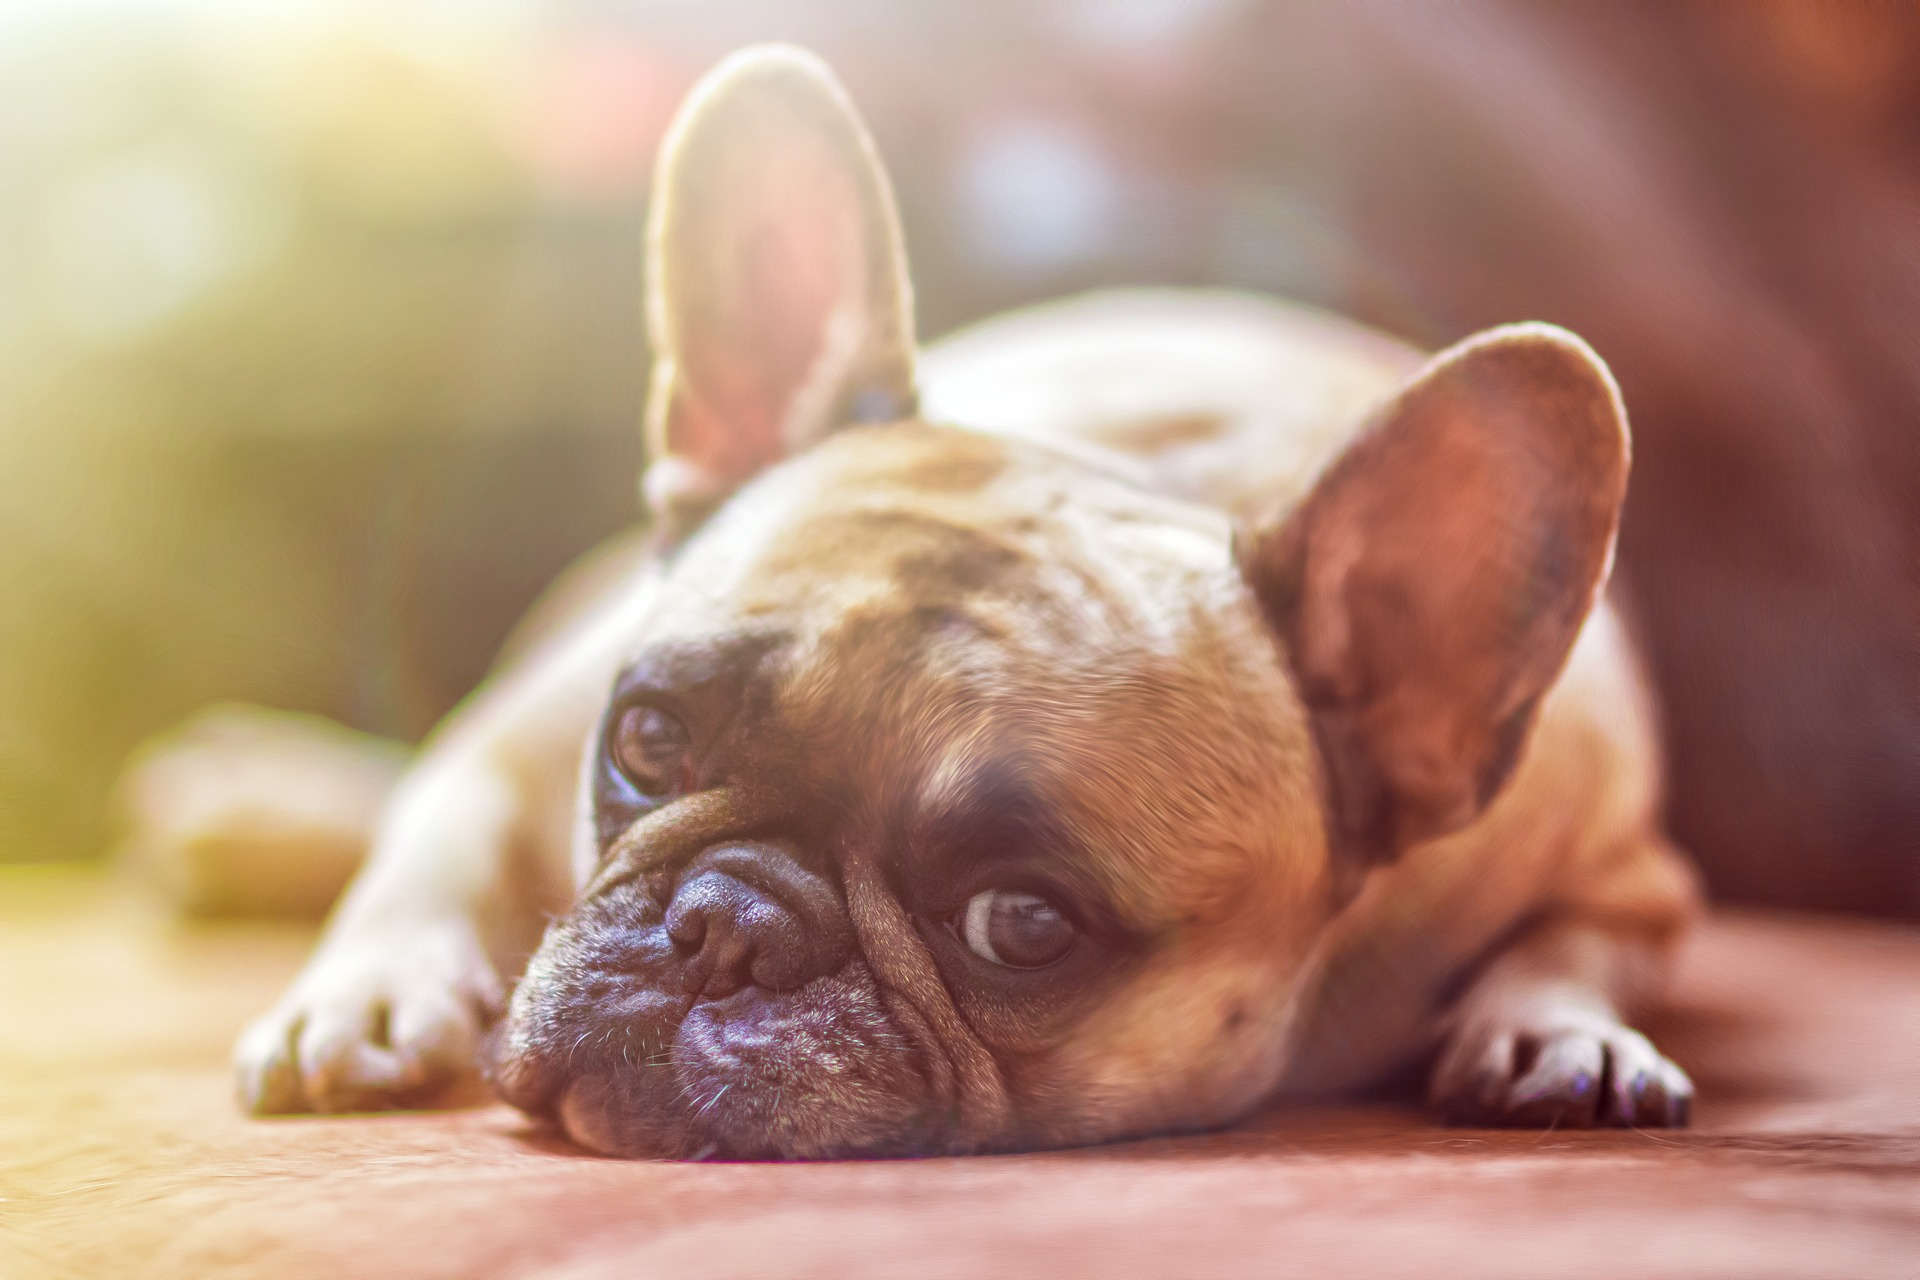 Elegant Upset Stomach How Much Pumpkin Puree To Give A Dog Effective Treatment Healthy How Much Pumpkin To Give A Dog French Bulldog Lying On Veranda How To S Dog Diarrhea bark post How Much Pumpkin To Give A Dog